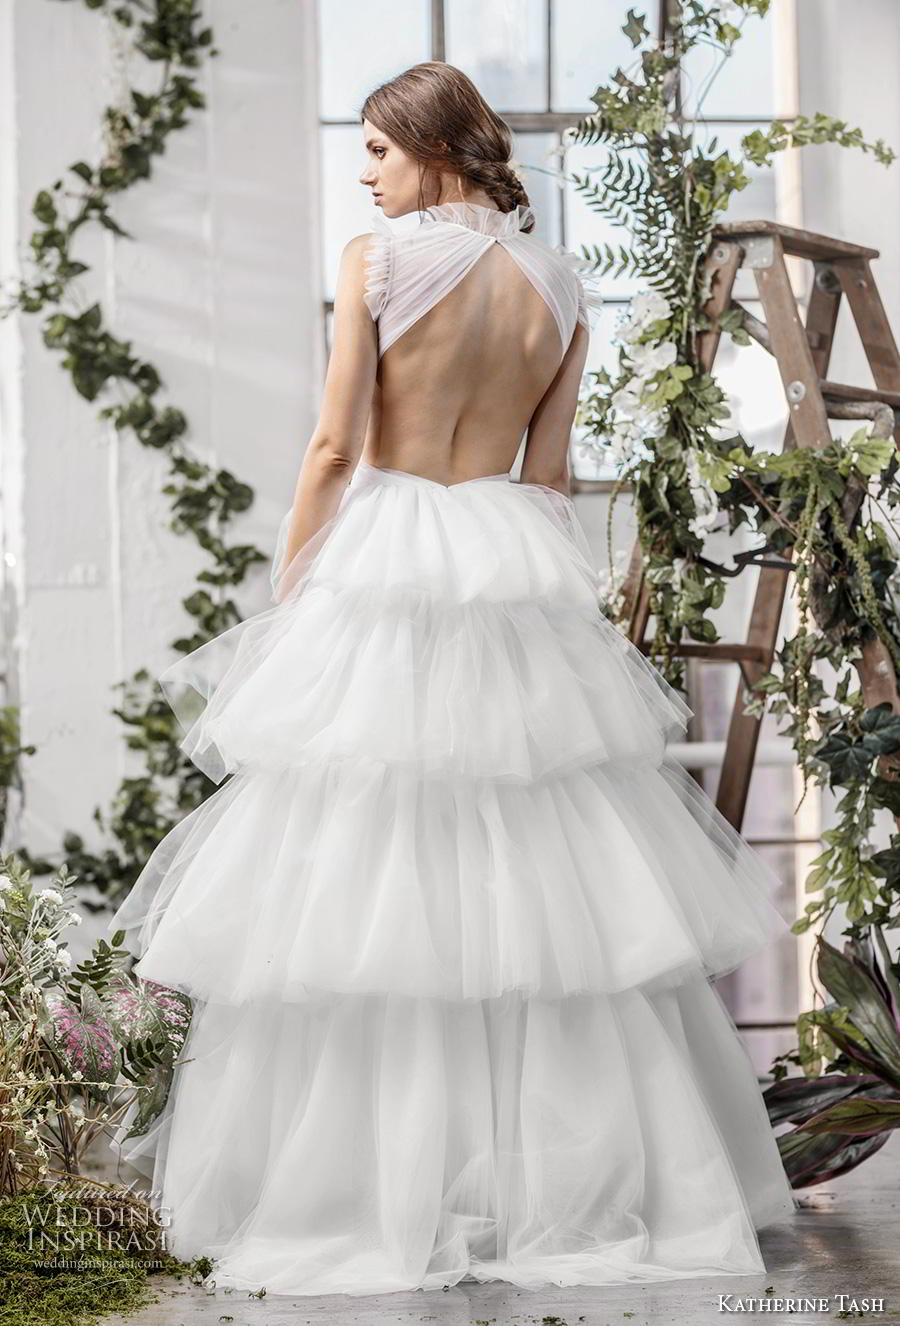 katherine tash fall 2019 bridal sleeveless high neck keyhole ruched bodice tiered skirt romantic ball gown a  line wedding dress keyhole back sweep train (12) bv